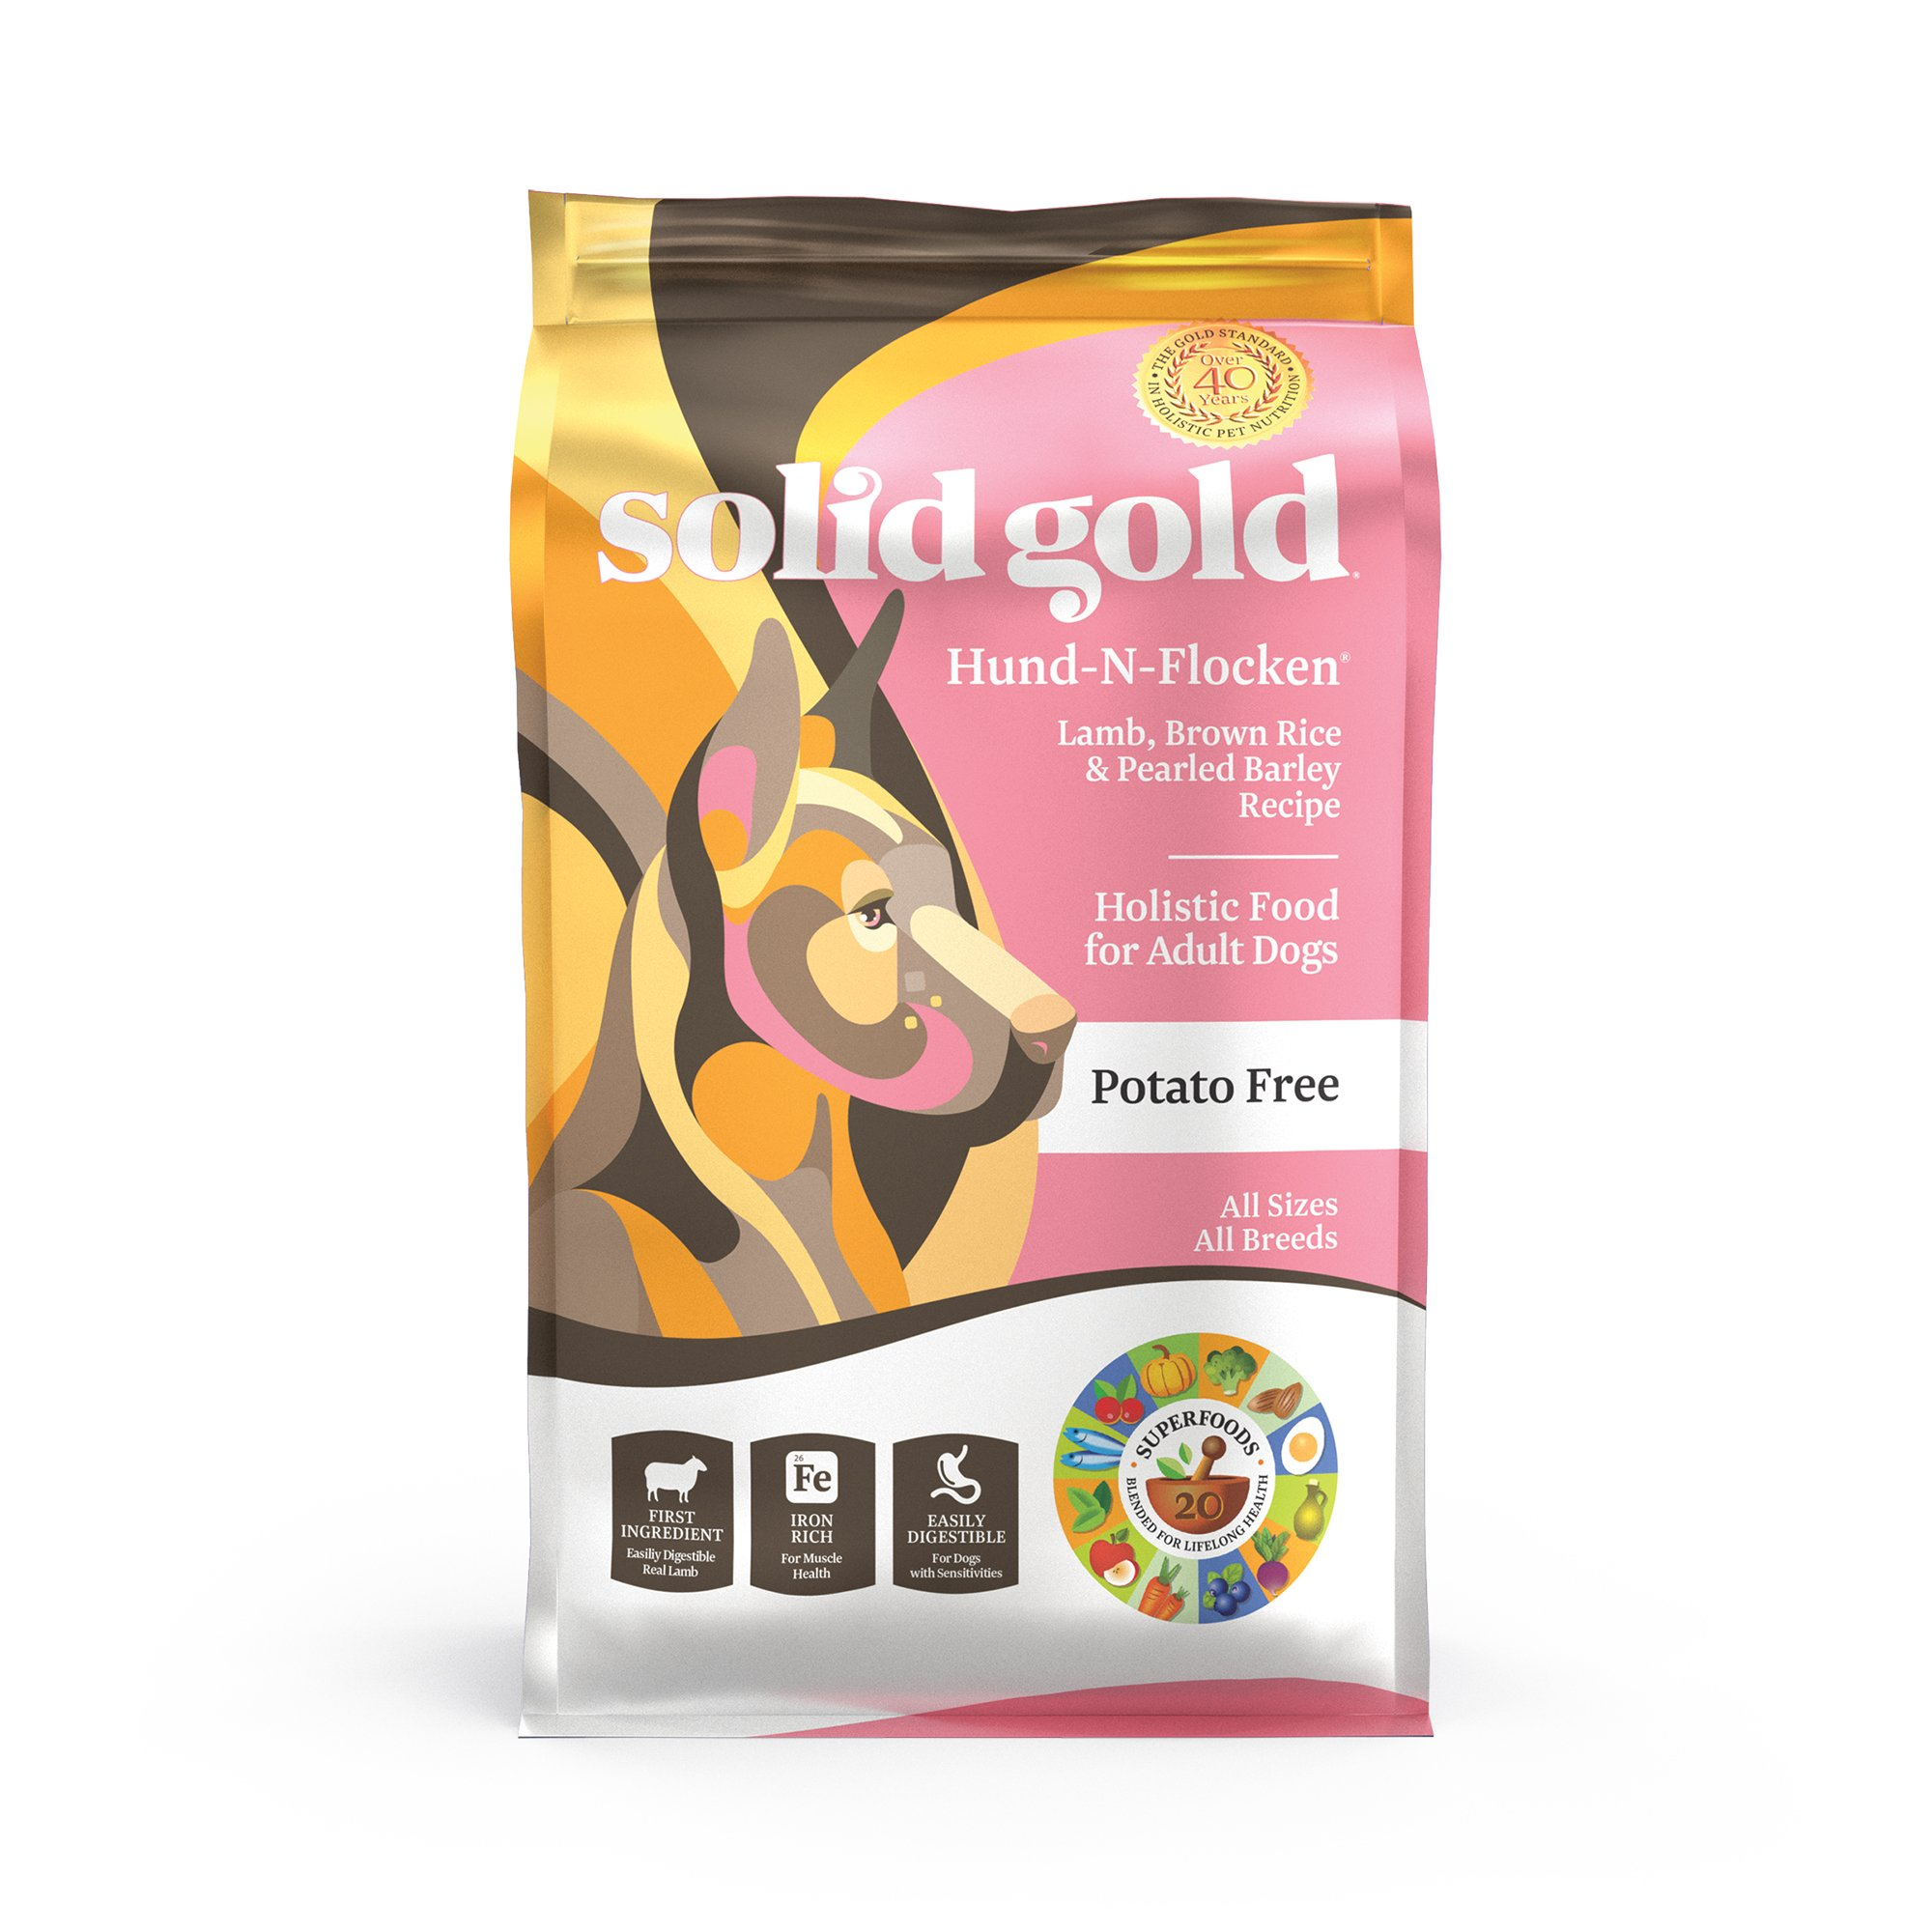 Solid Gold Dry Dog Food; Hund-N-Flocken with Real Lamb, Brown Rice & Barley; 28.5lb